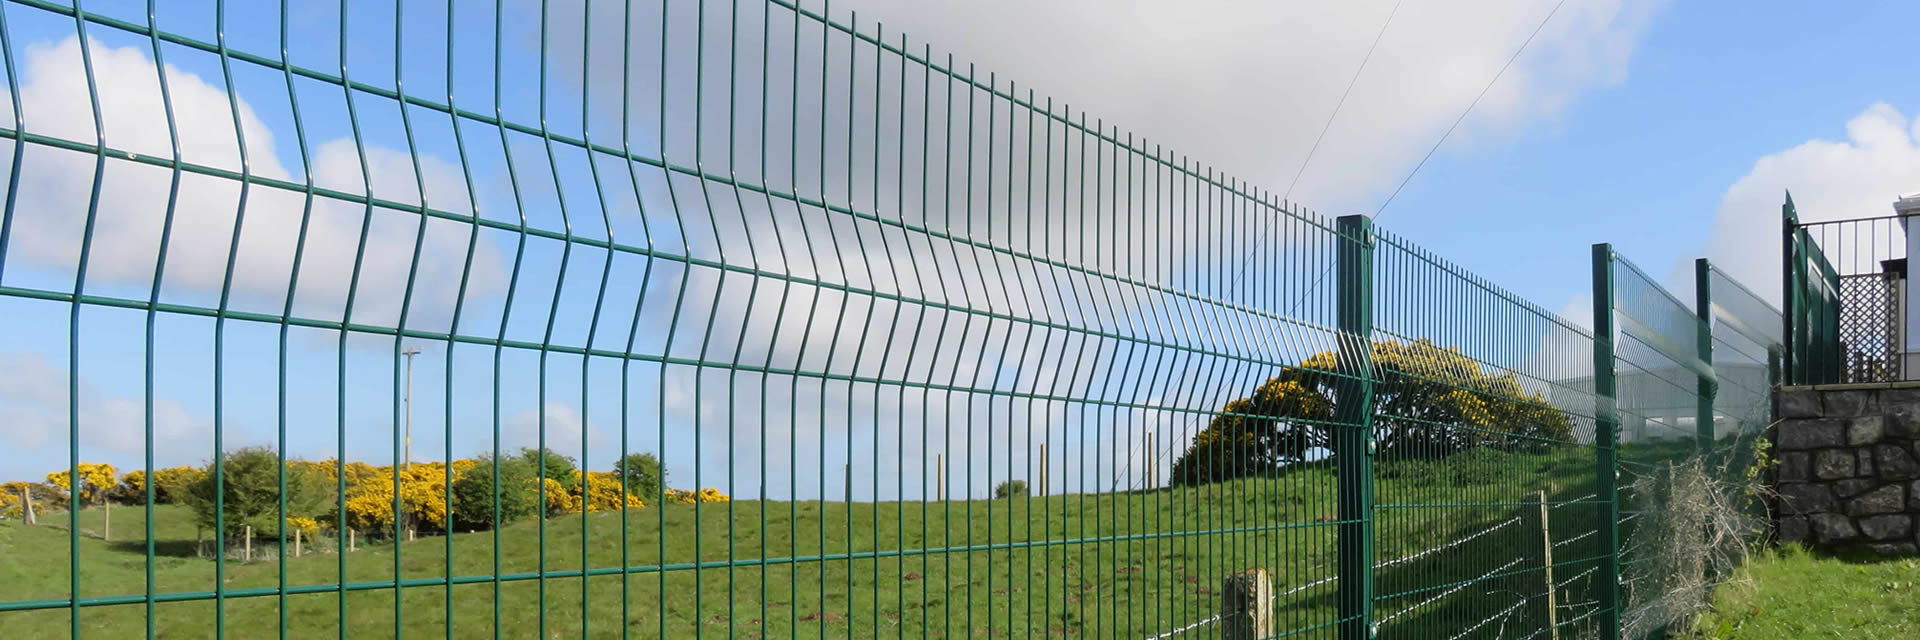 Green PVC coated 3D fence is used in a sloping stone earth.